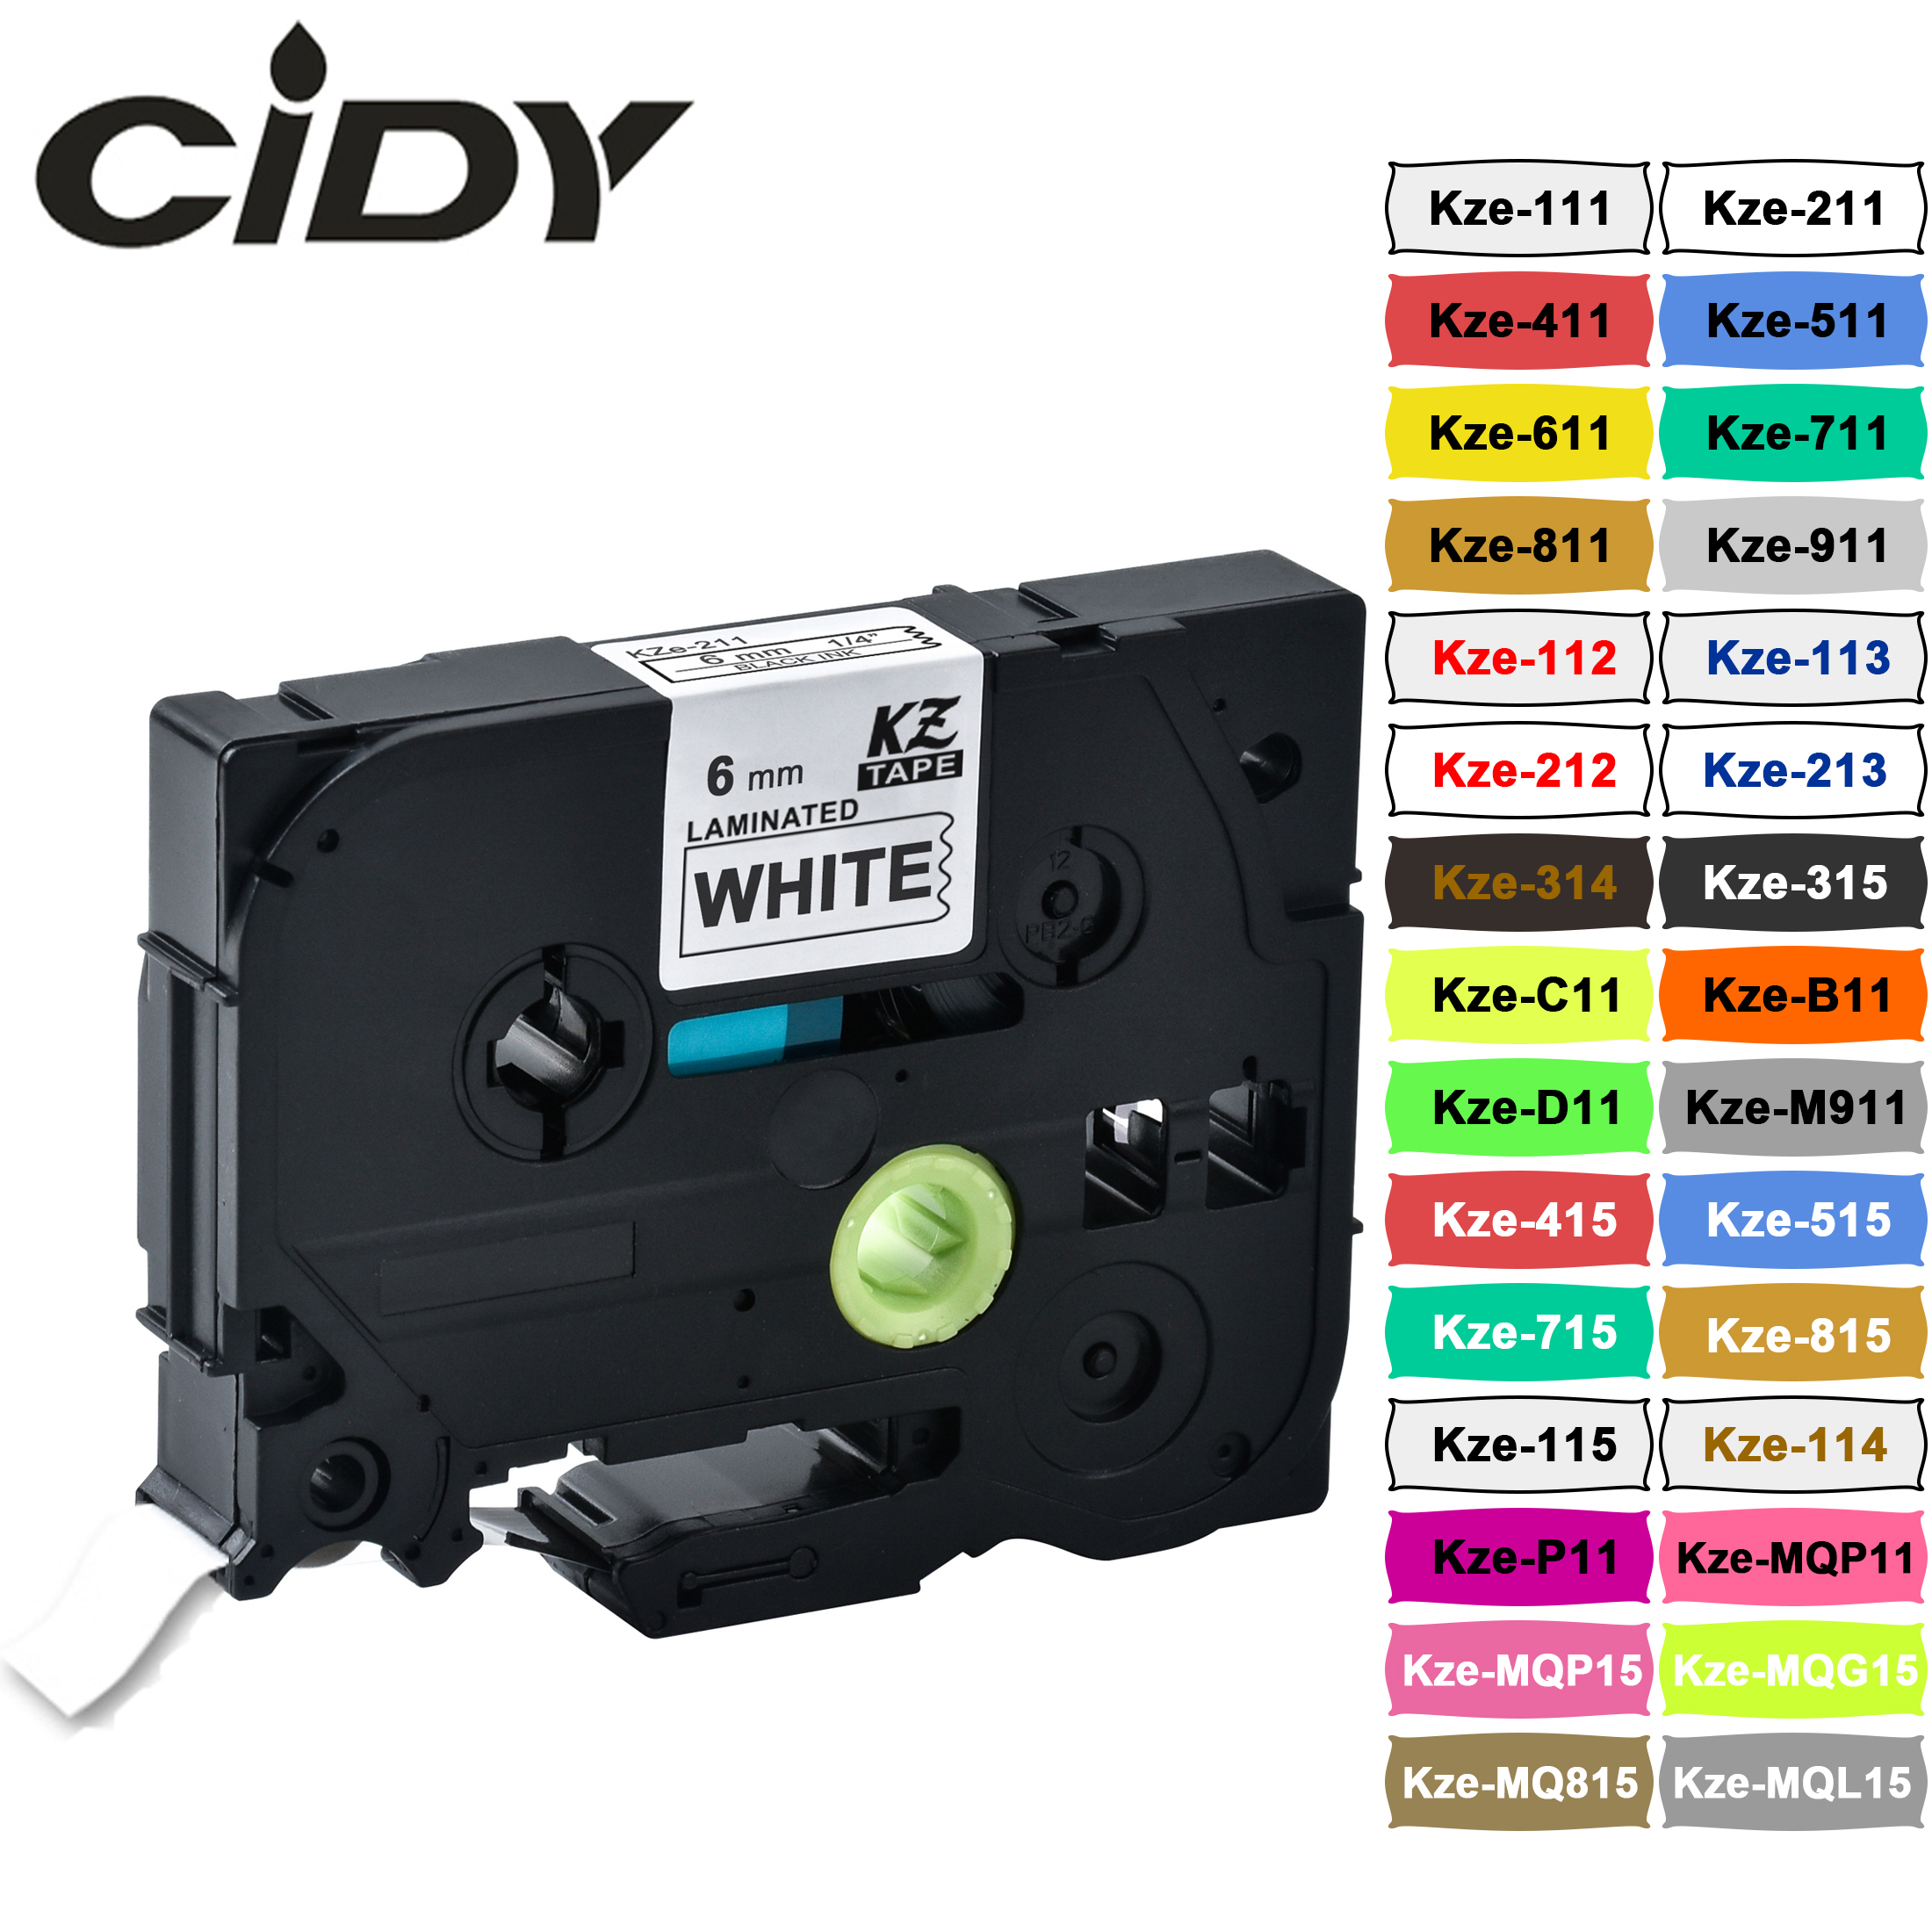 CIDY 6mm Tze-211 Compatible Laminated Tze 211 Tze211 Black On White Label Tape Tz-211 For Brother P-touch Printer Tze-111